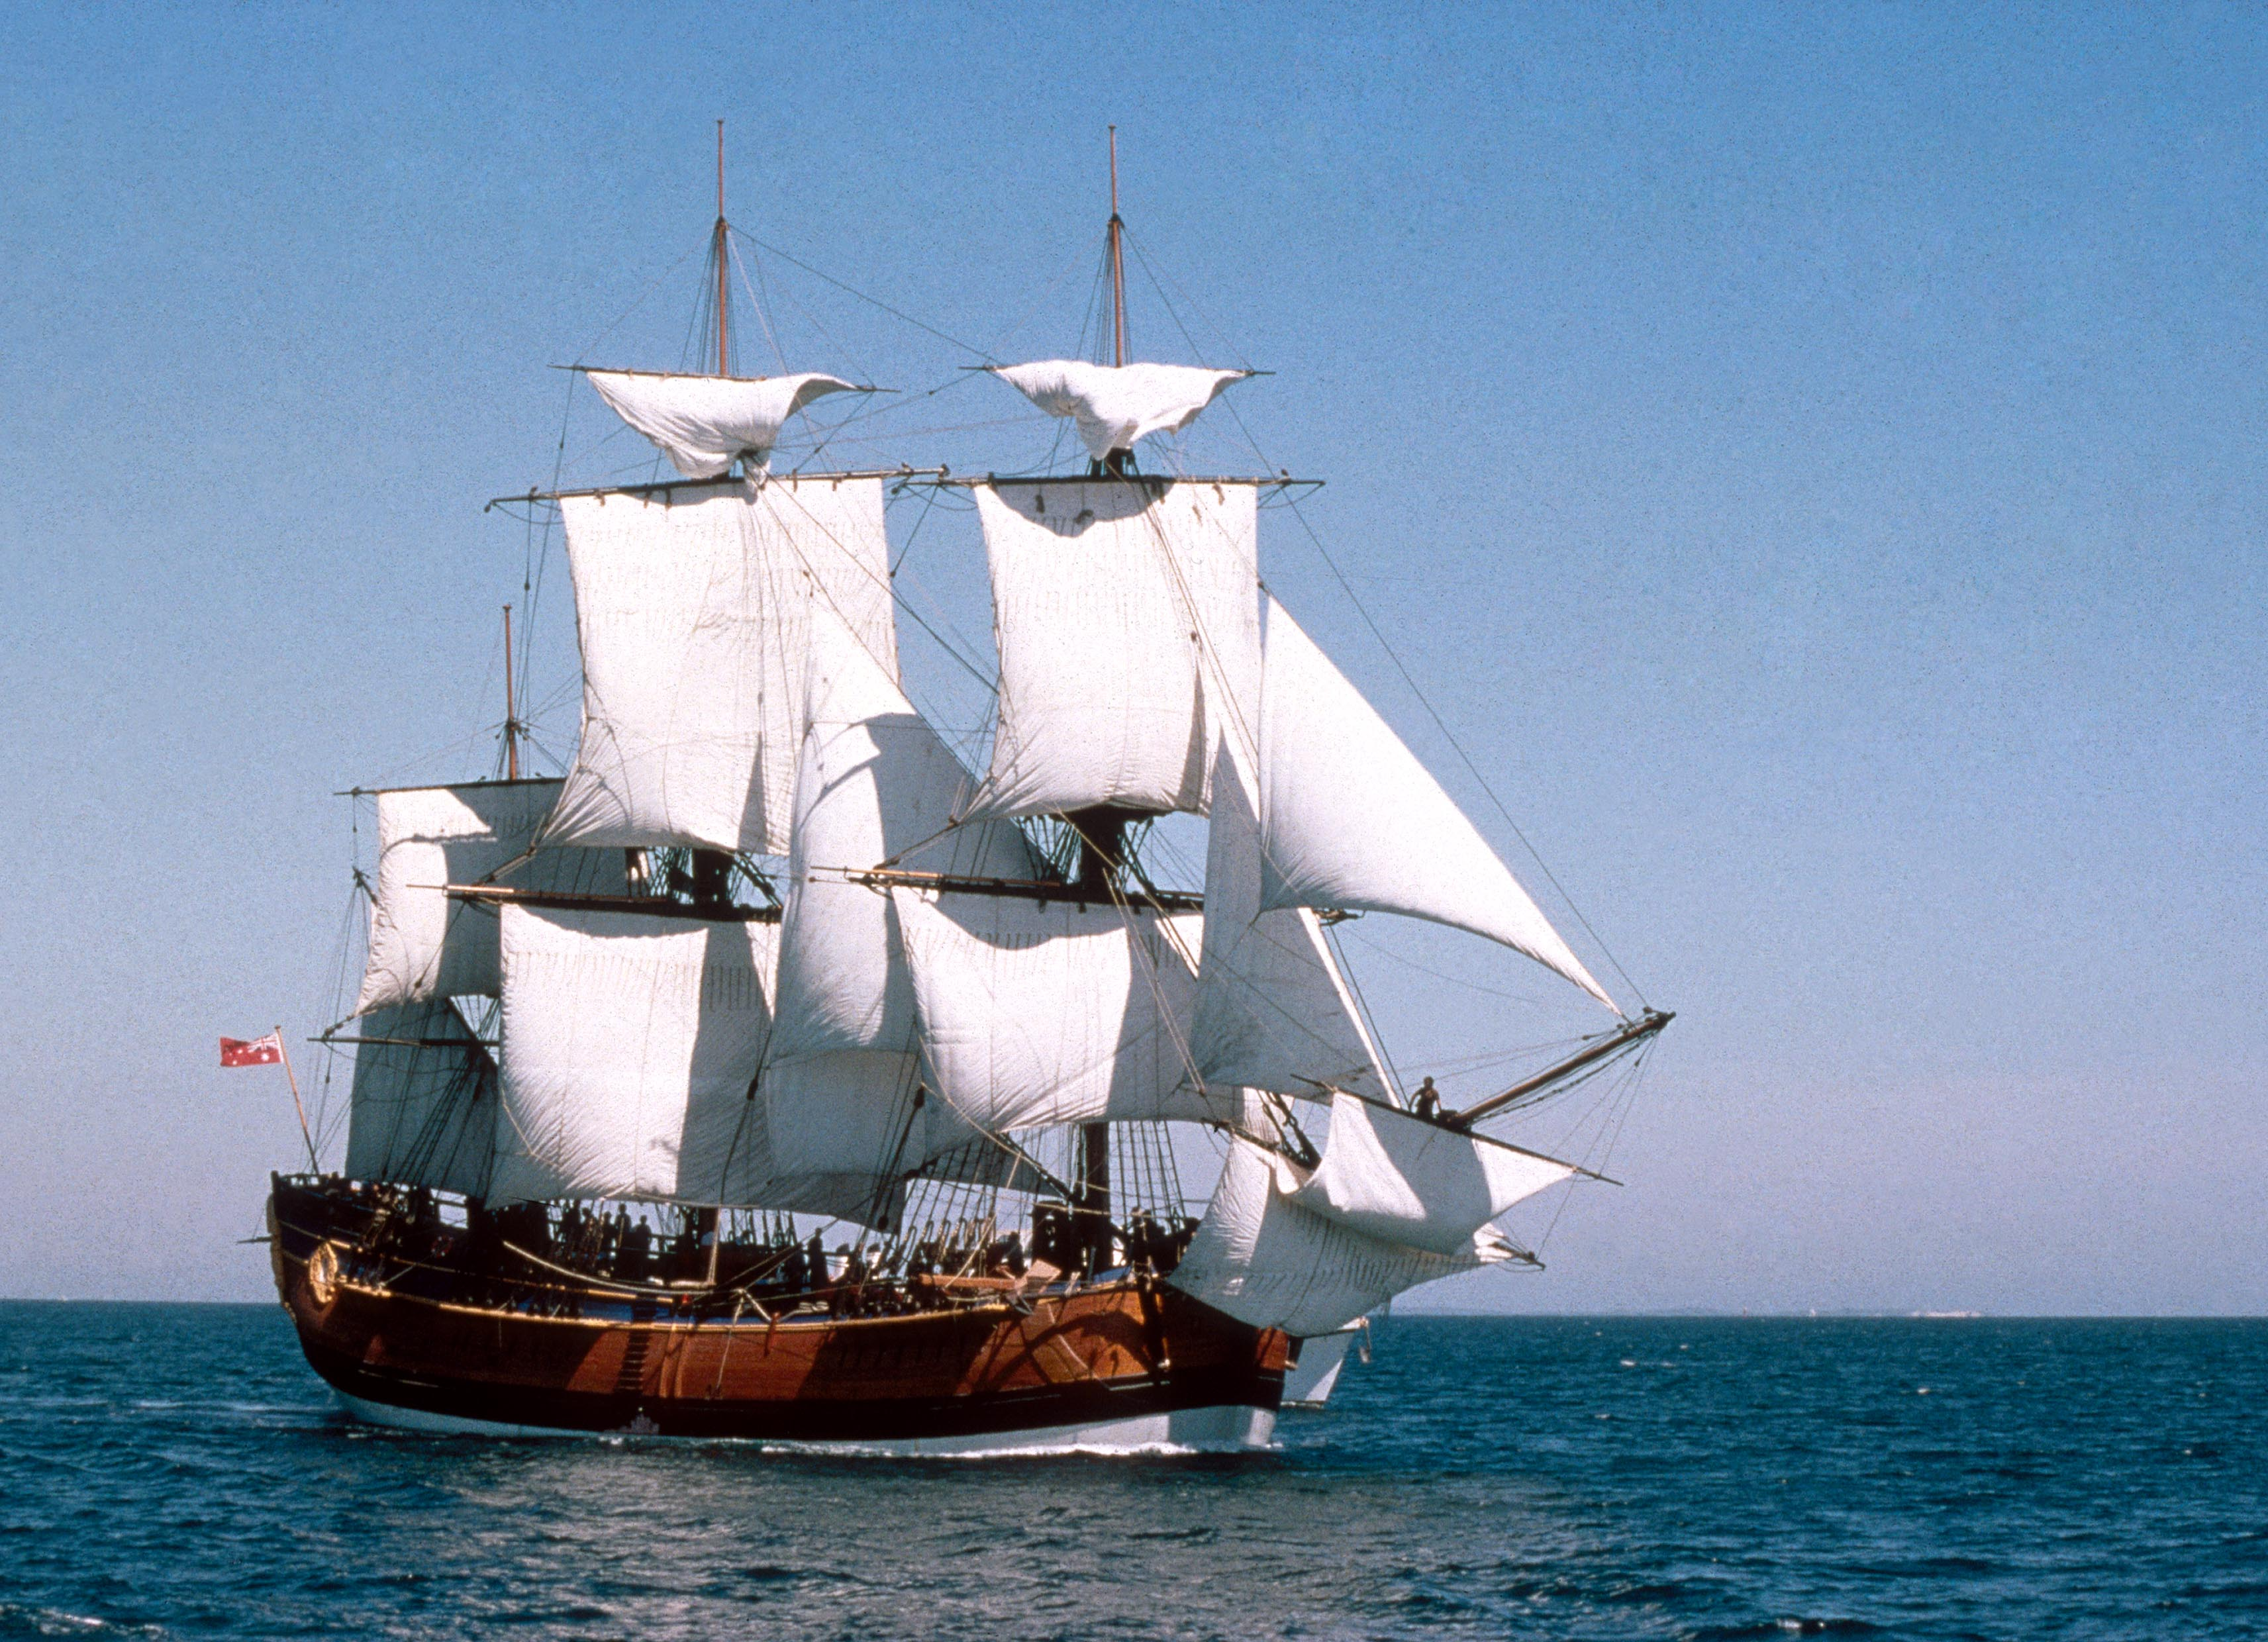 The HMB Endeavour replica at sea